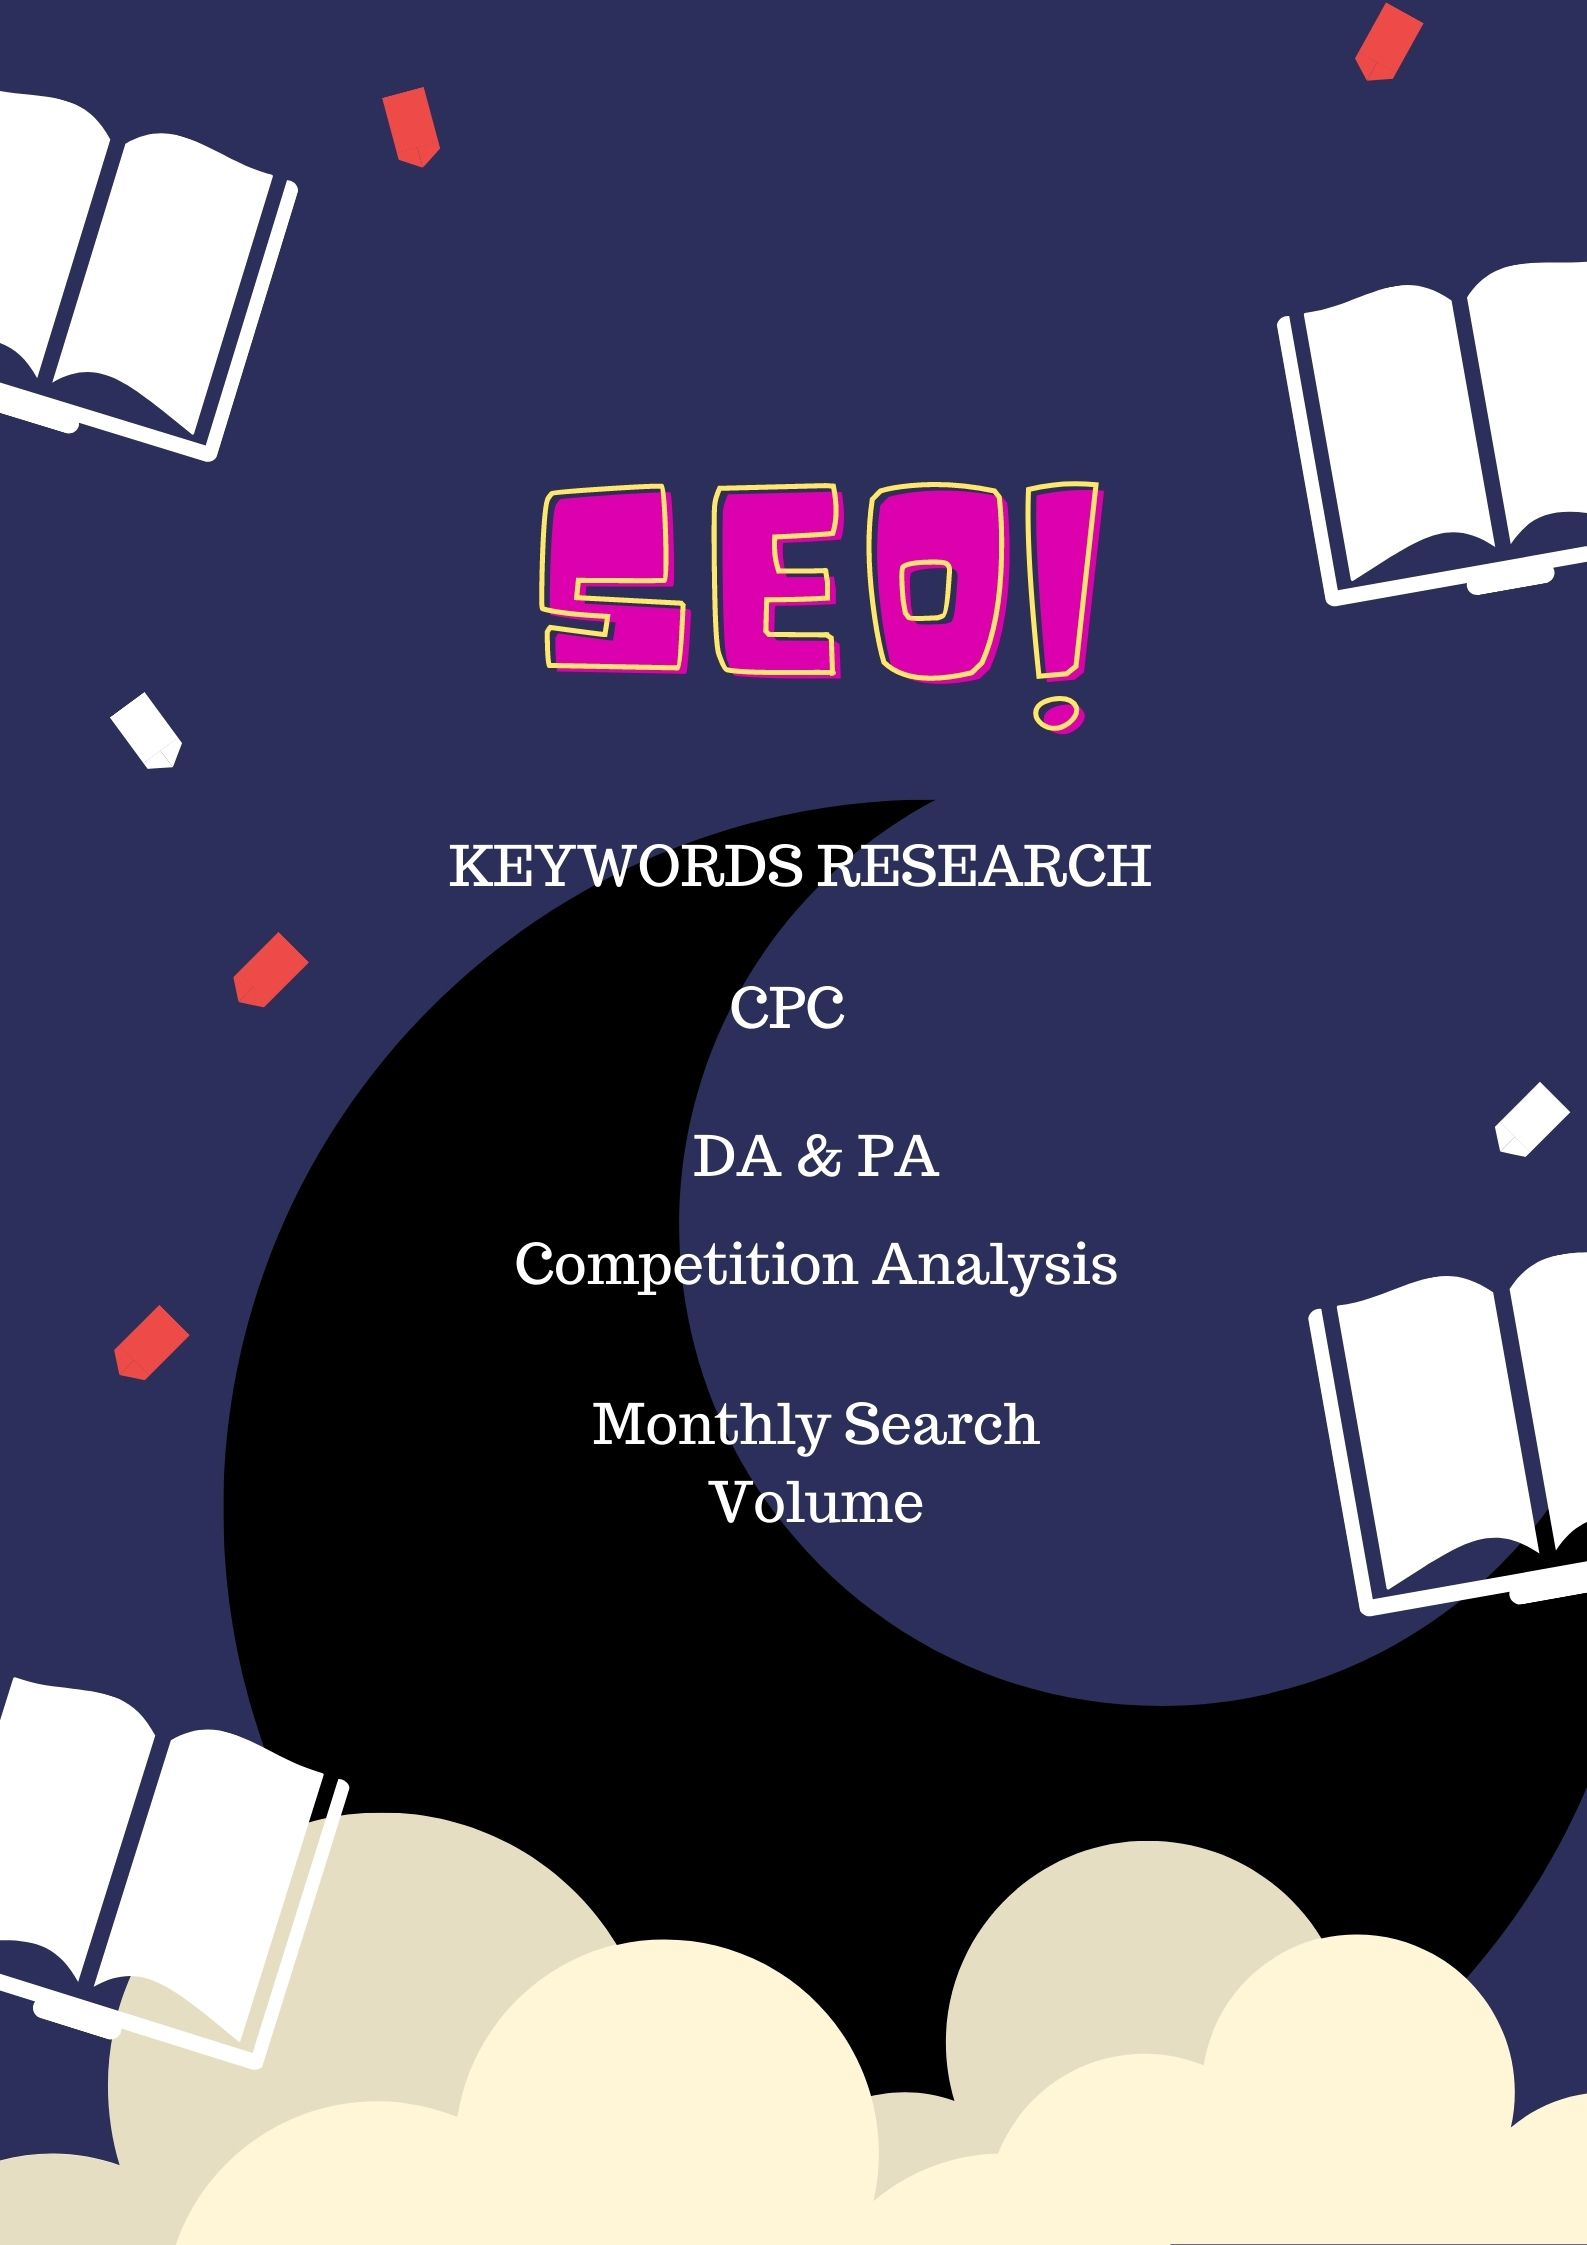 I Do Profitable Keyword Research and CPC with Shorter Period